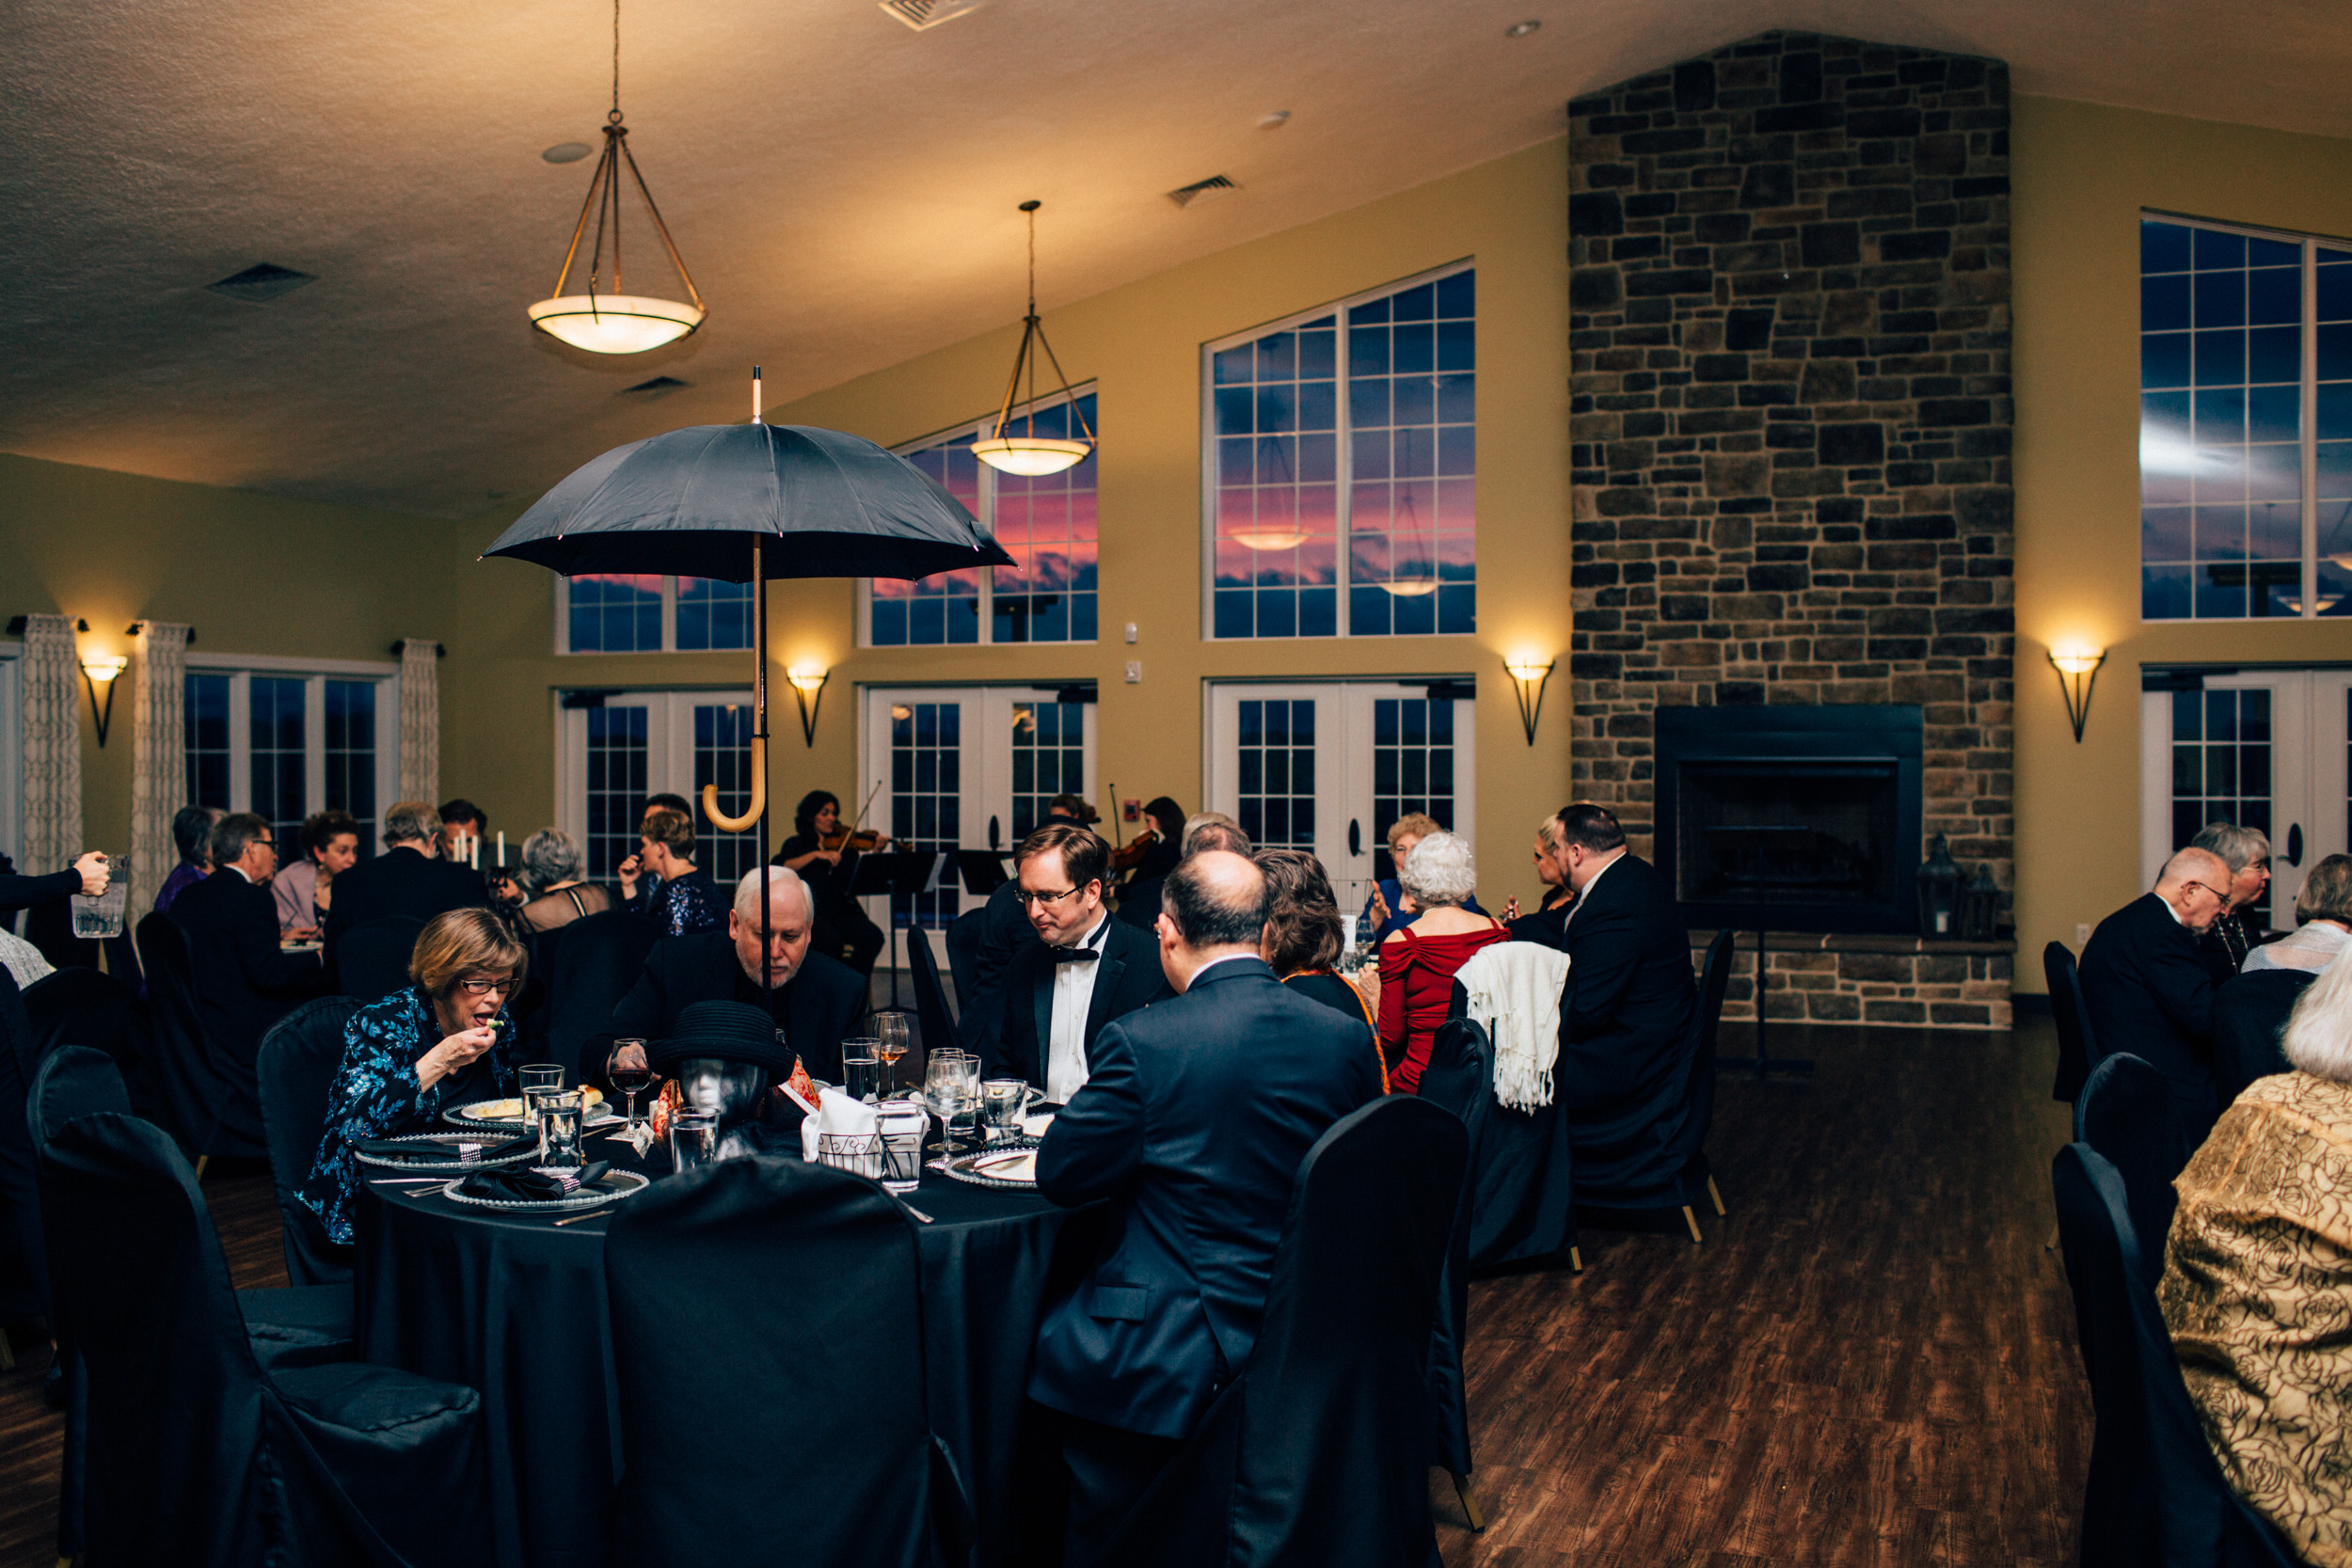 Copy of Shenandoah Valley Bach Festival: 2nd Annual Bach Festival Gala at Bluestone Vineyards